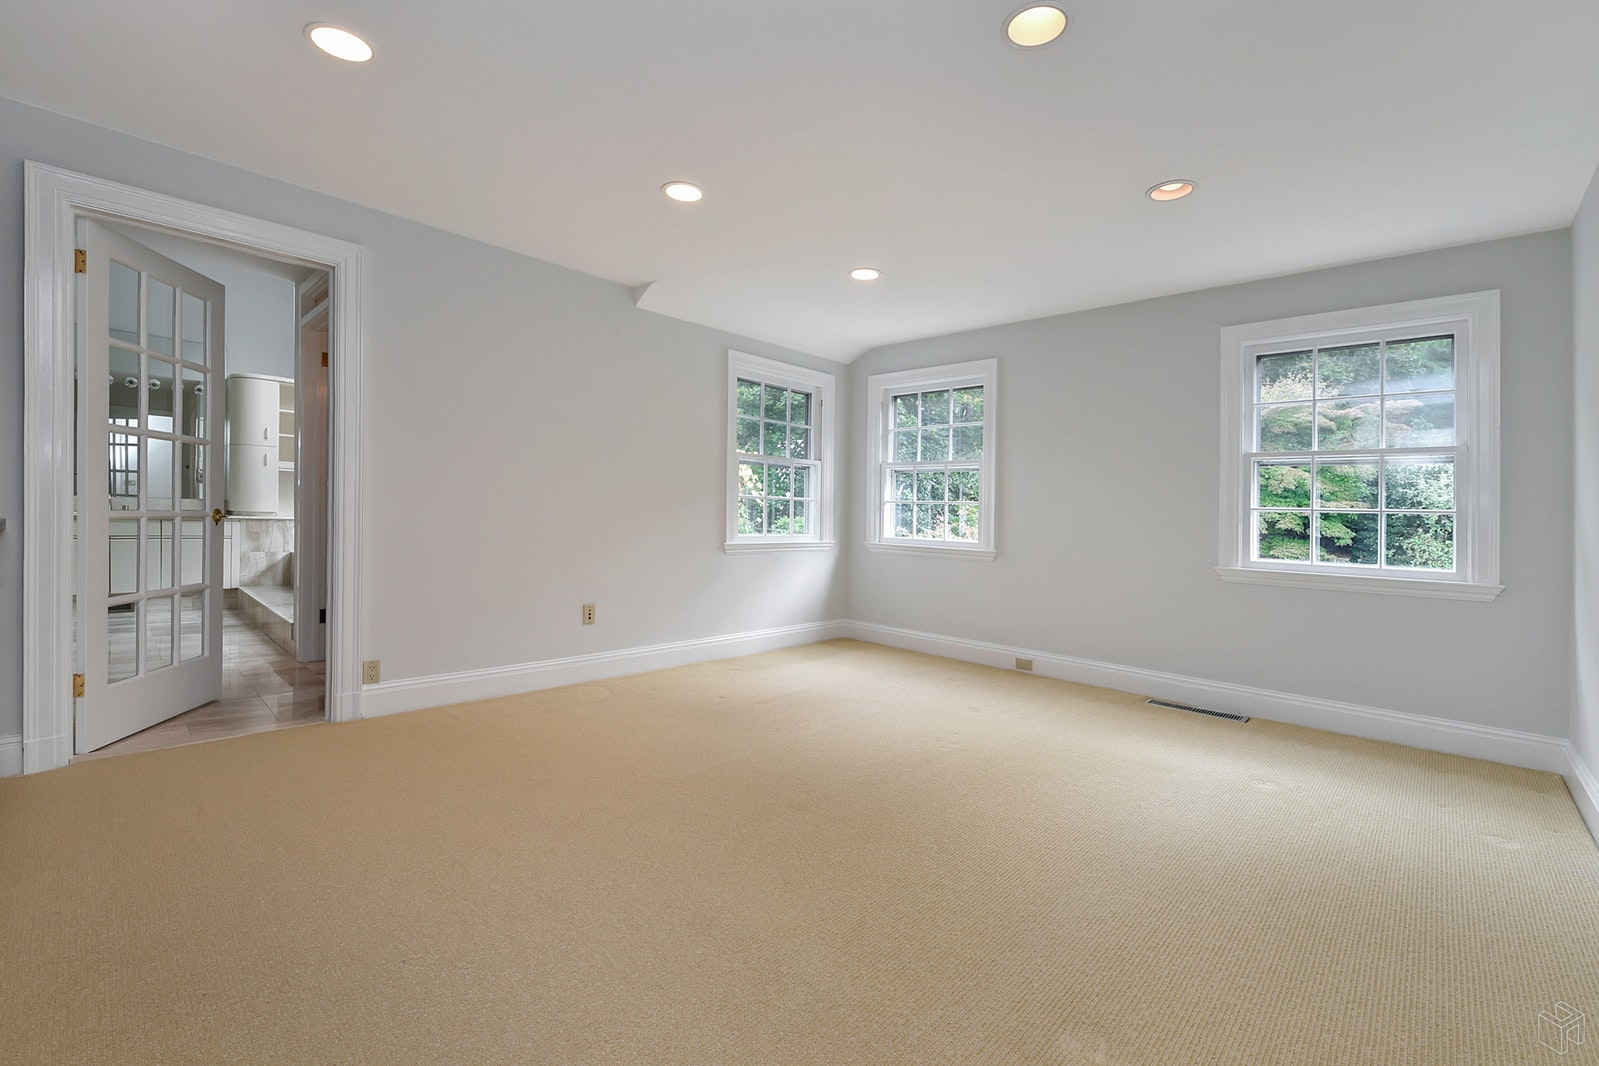 288 Upper Avenue Mountain, Montclair, New Jersey, 07043, $1,629,000, Sold Property, Halstead Real Estate, Photo 18